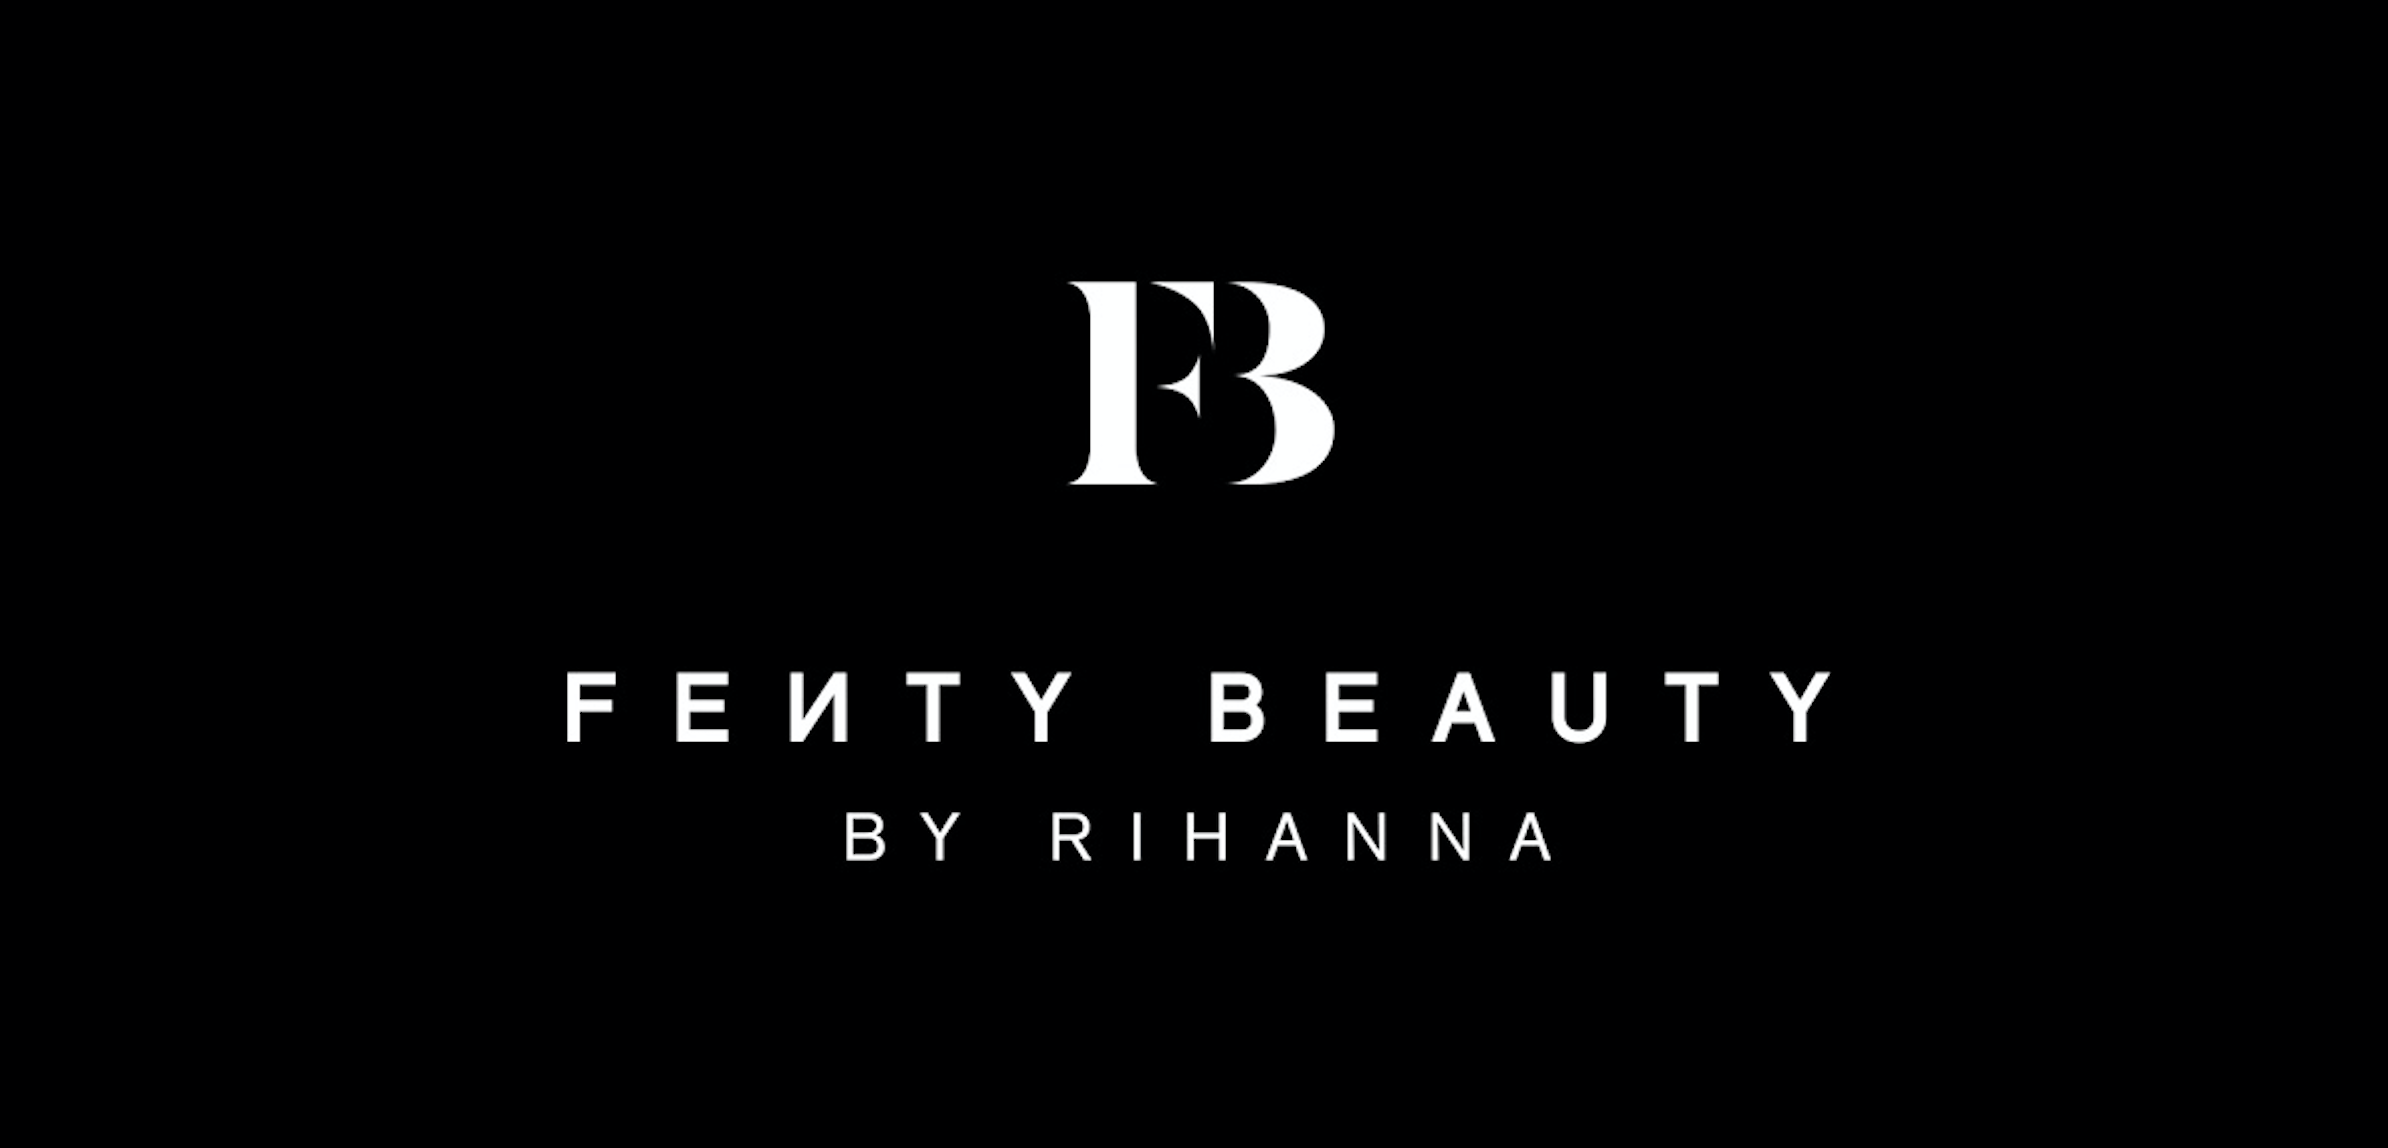 فنتي بيوتي FENTY BEAUTY